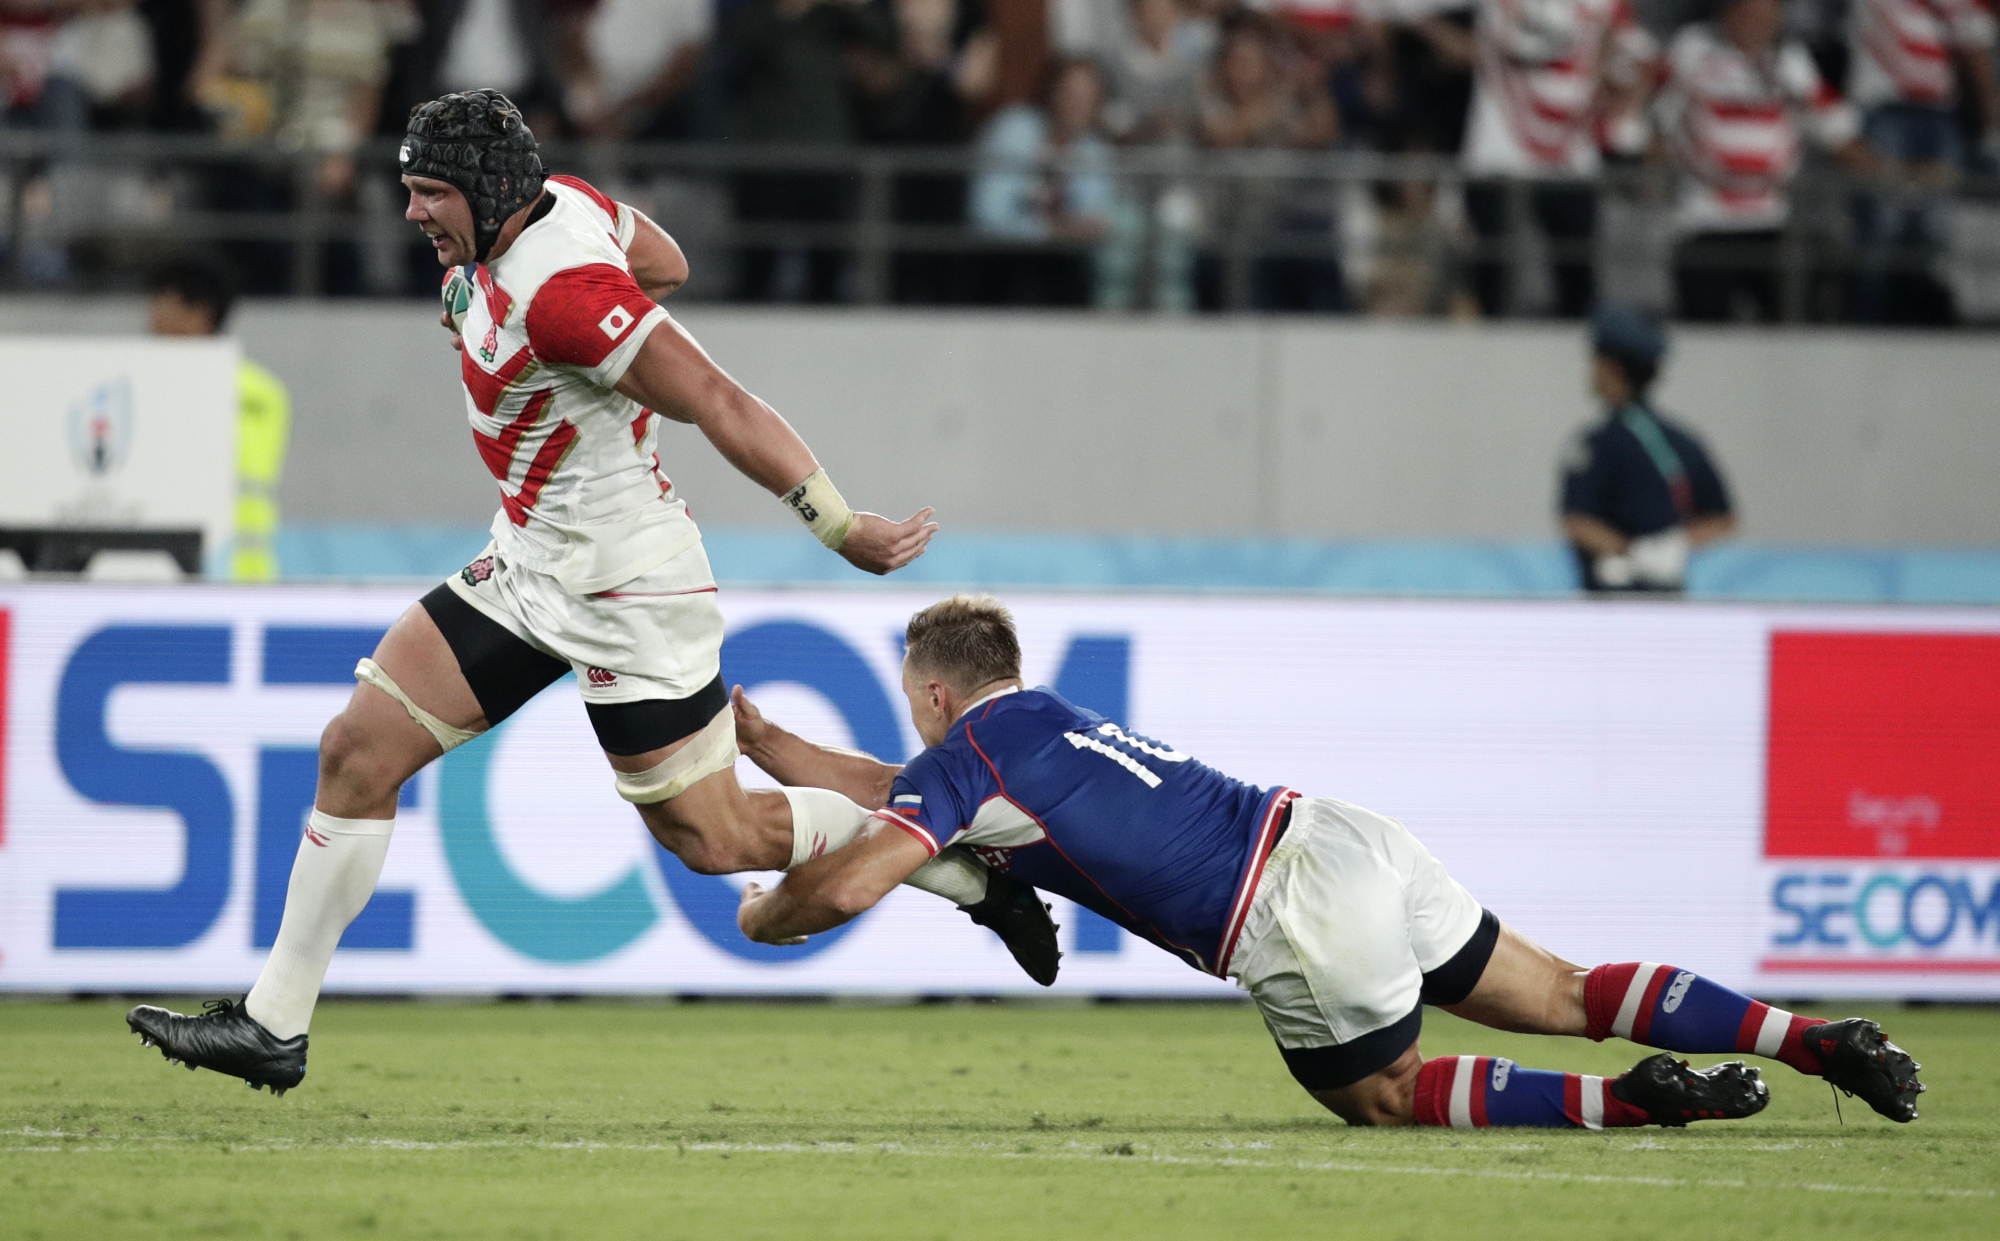 Japan's Pieter Labuschagne breaks the tackle of Russia's Yury Kushnarev on his way to scoring a try during the Rugby World Cup opening game at Tokyo Stadium on Friday night. Japan defeated Russia 30-10. | AP